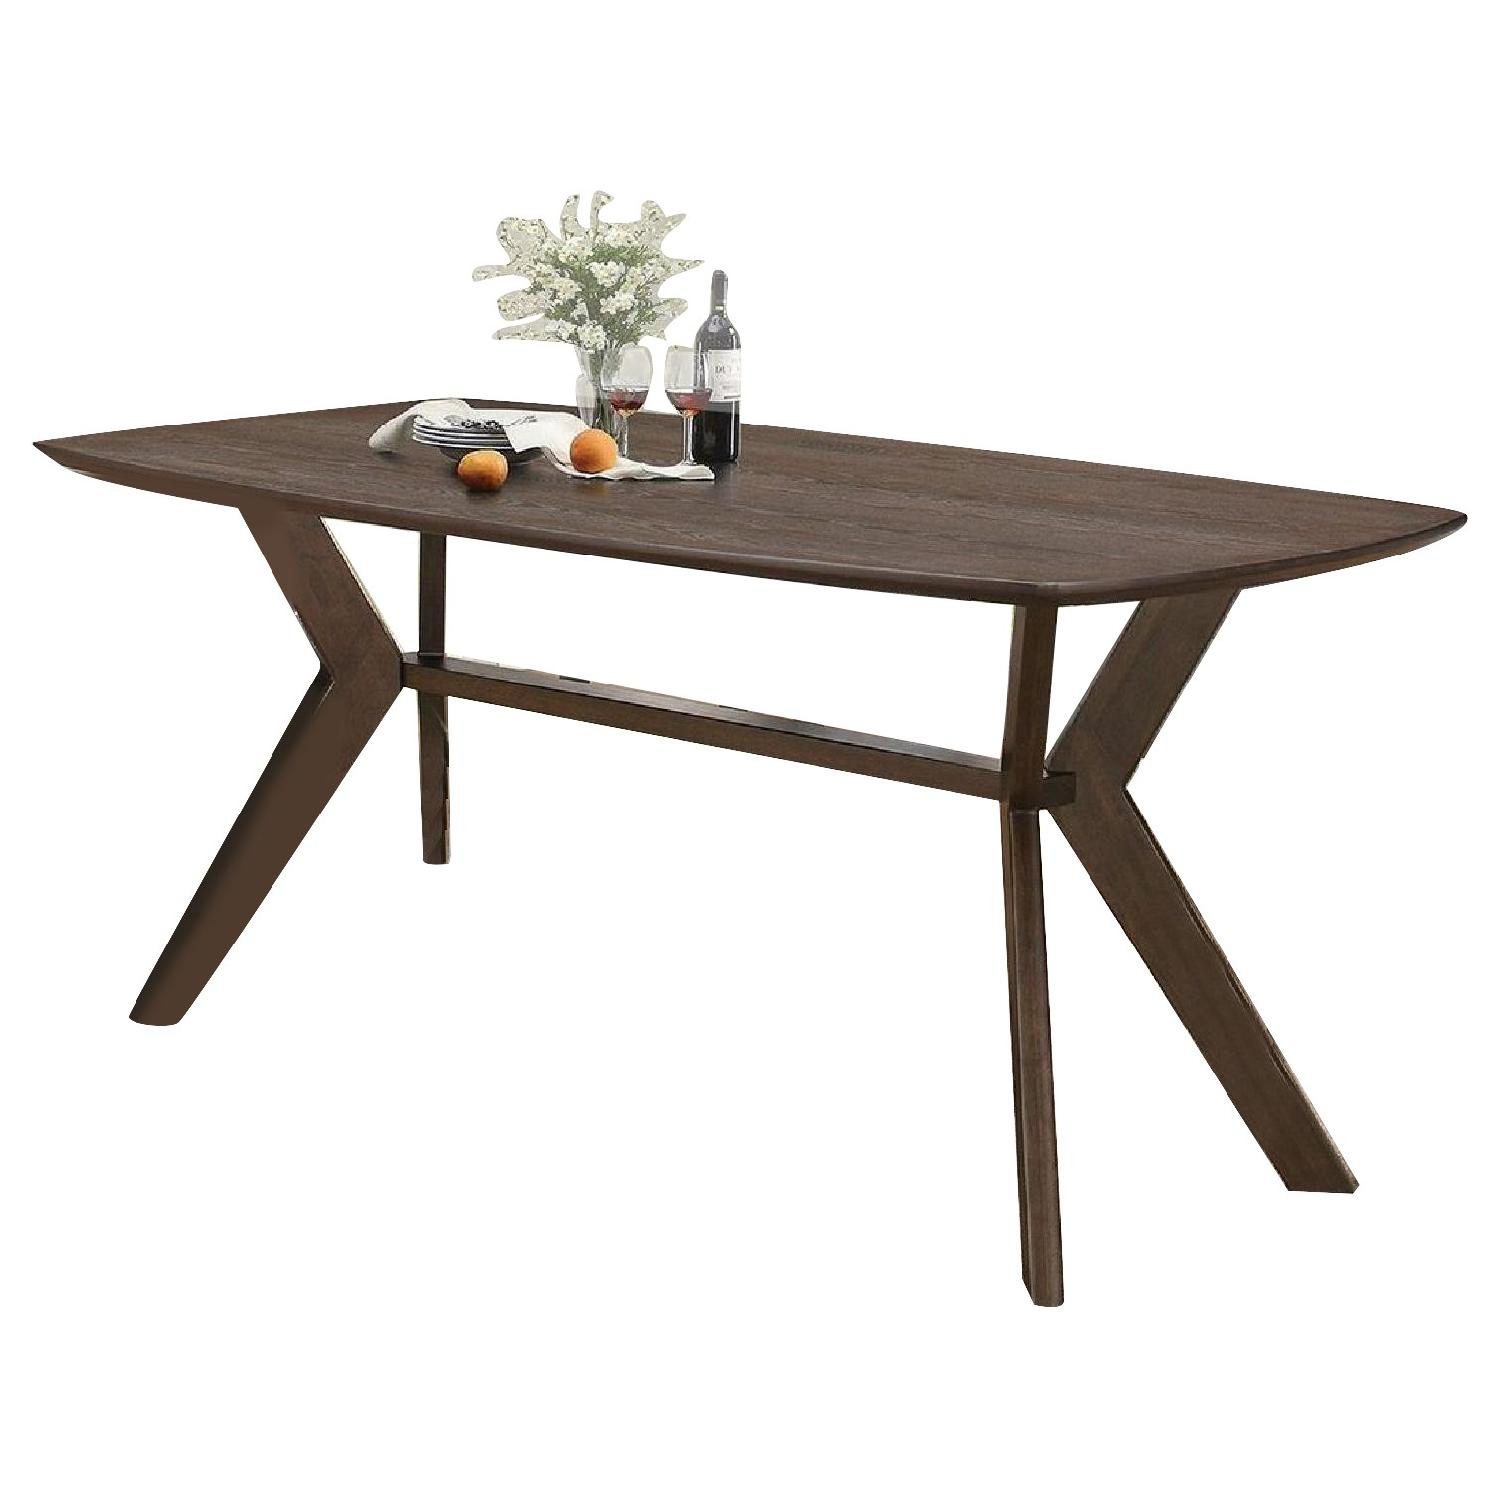 Coaster Retro Dining Table in Warm Brown Finish